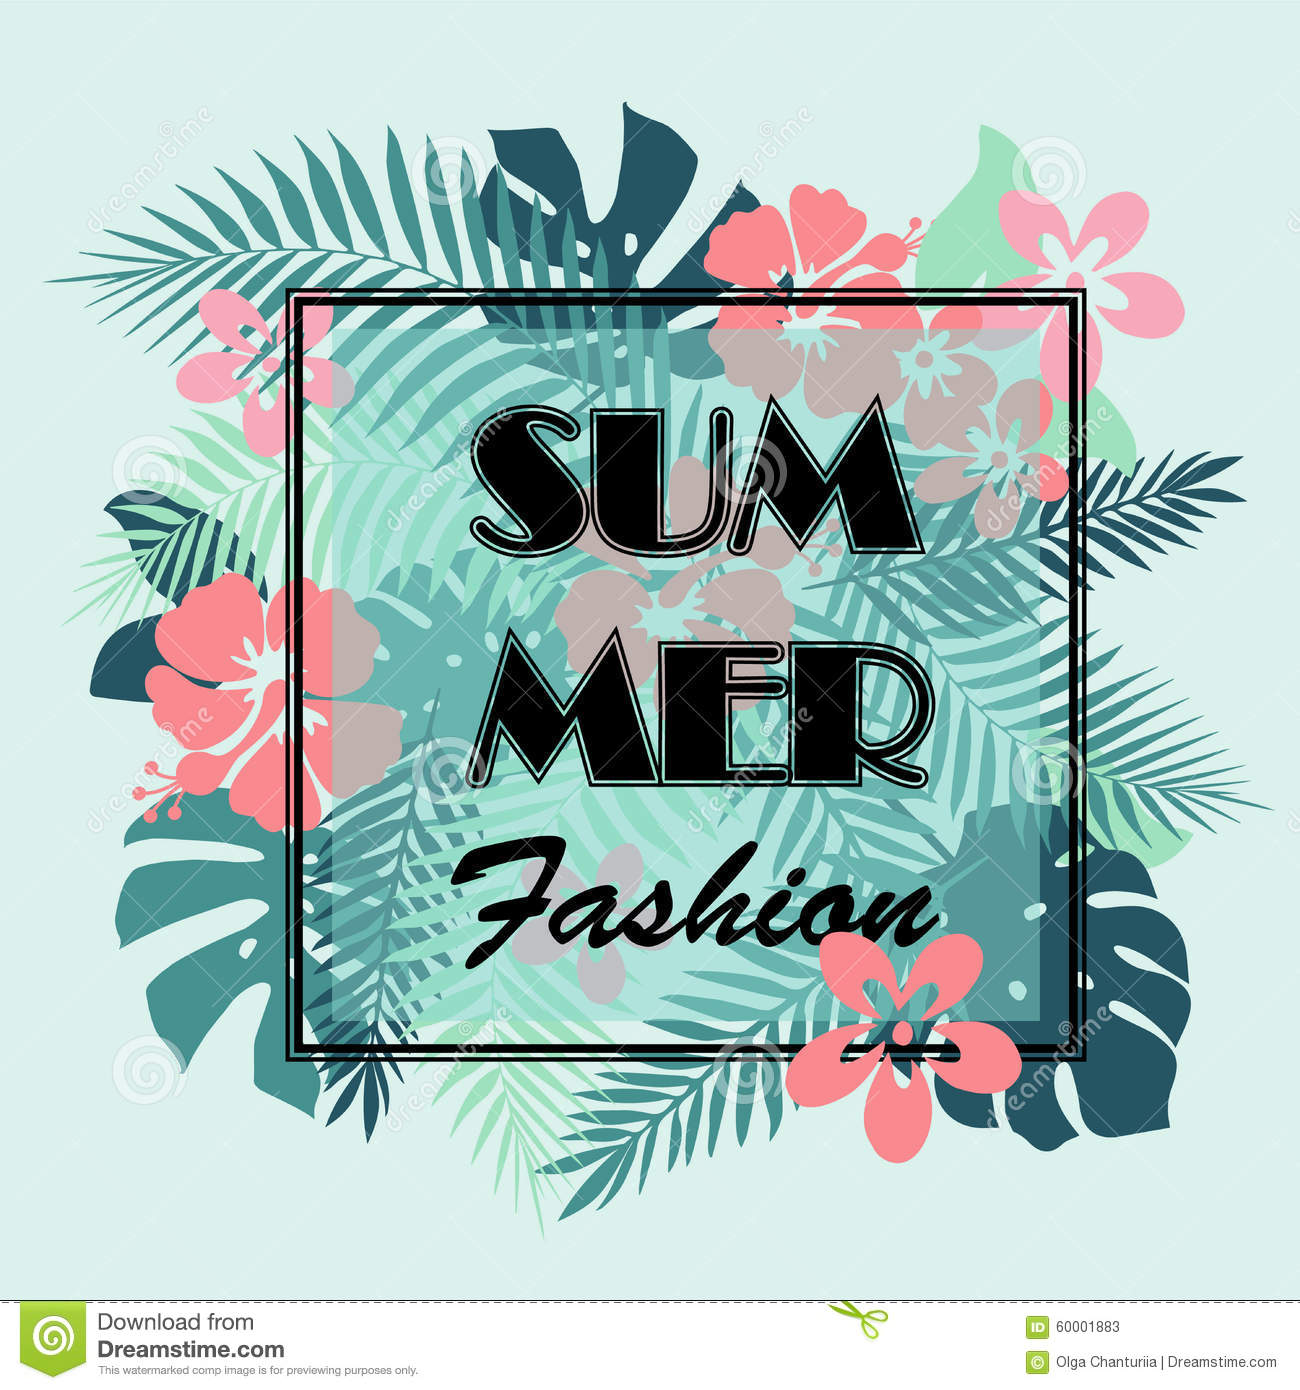 T shirt poster design - T Shirt Or Poster Design Print With Palm Leaves And Exotic Flowe Stock Illustration Image 60001883